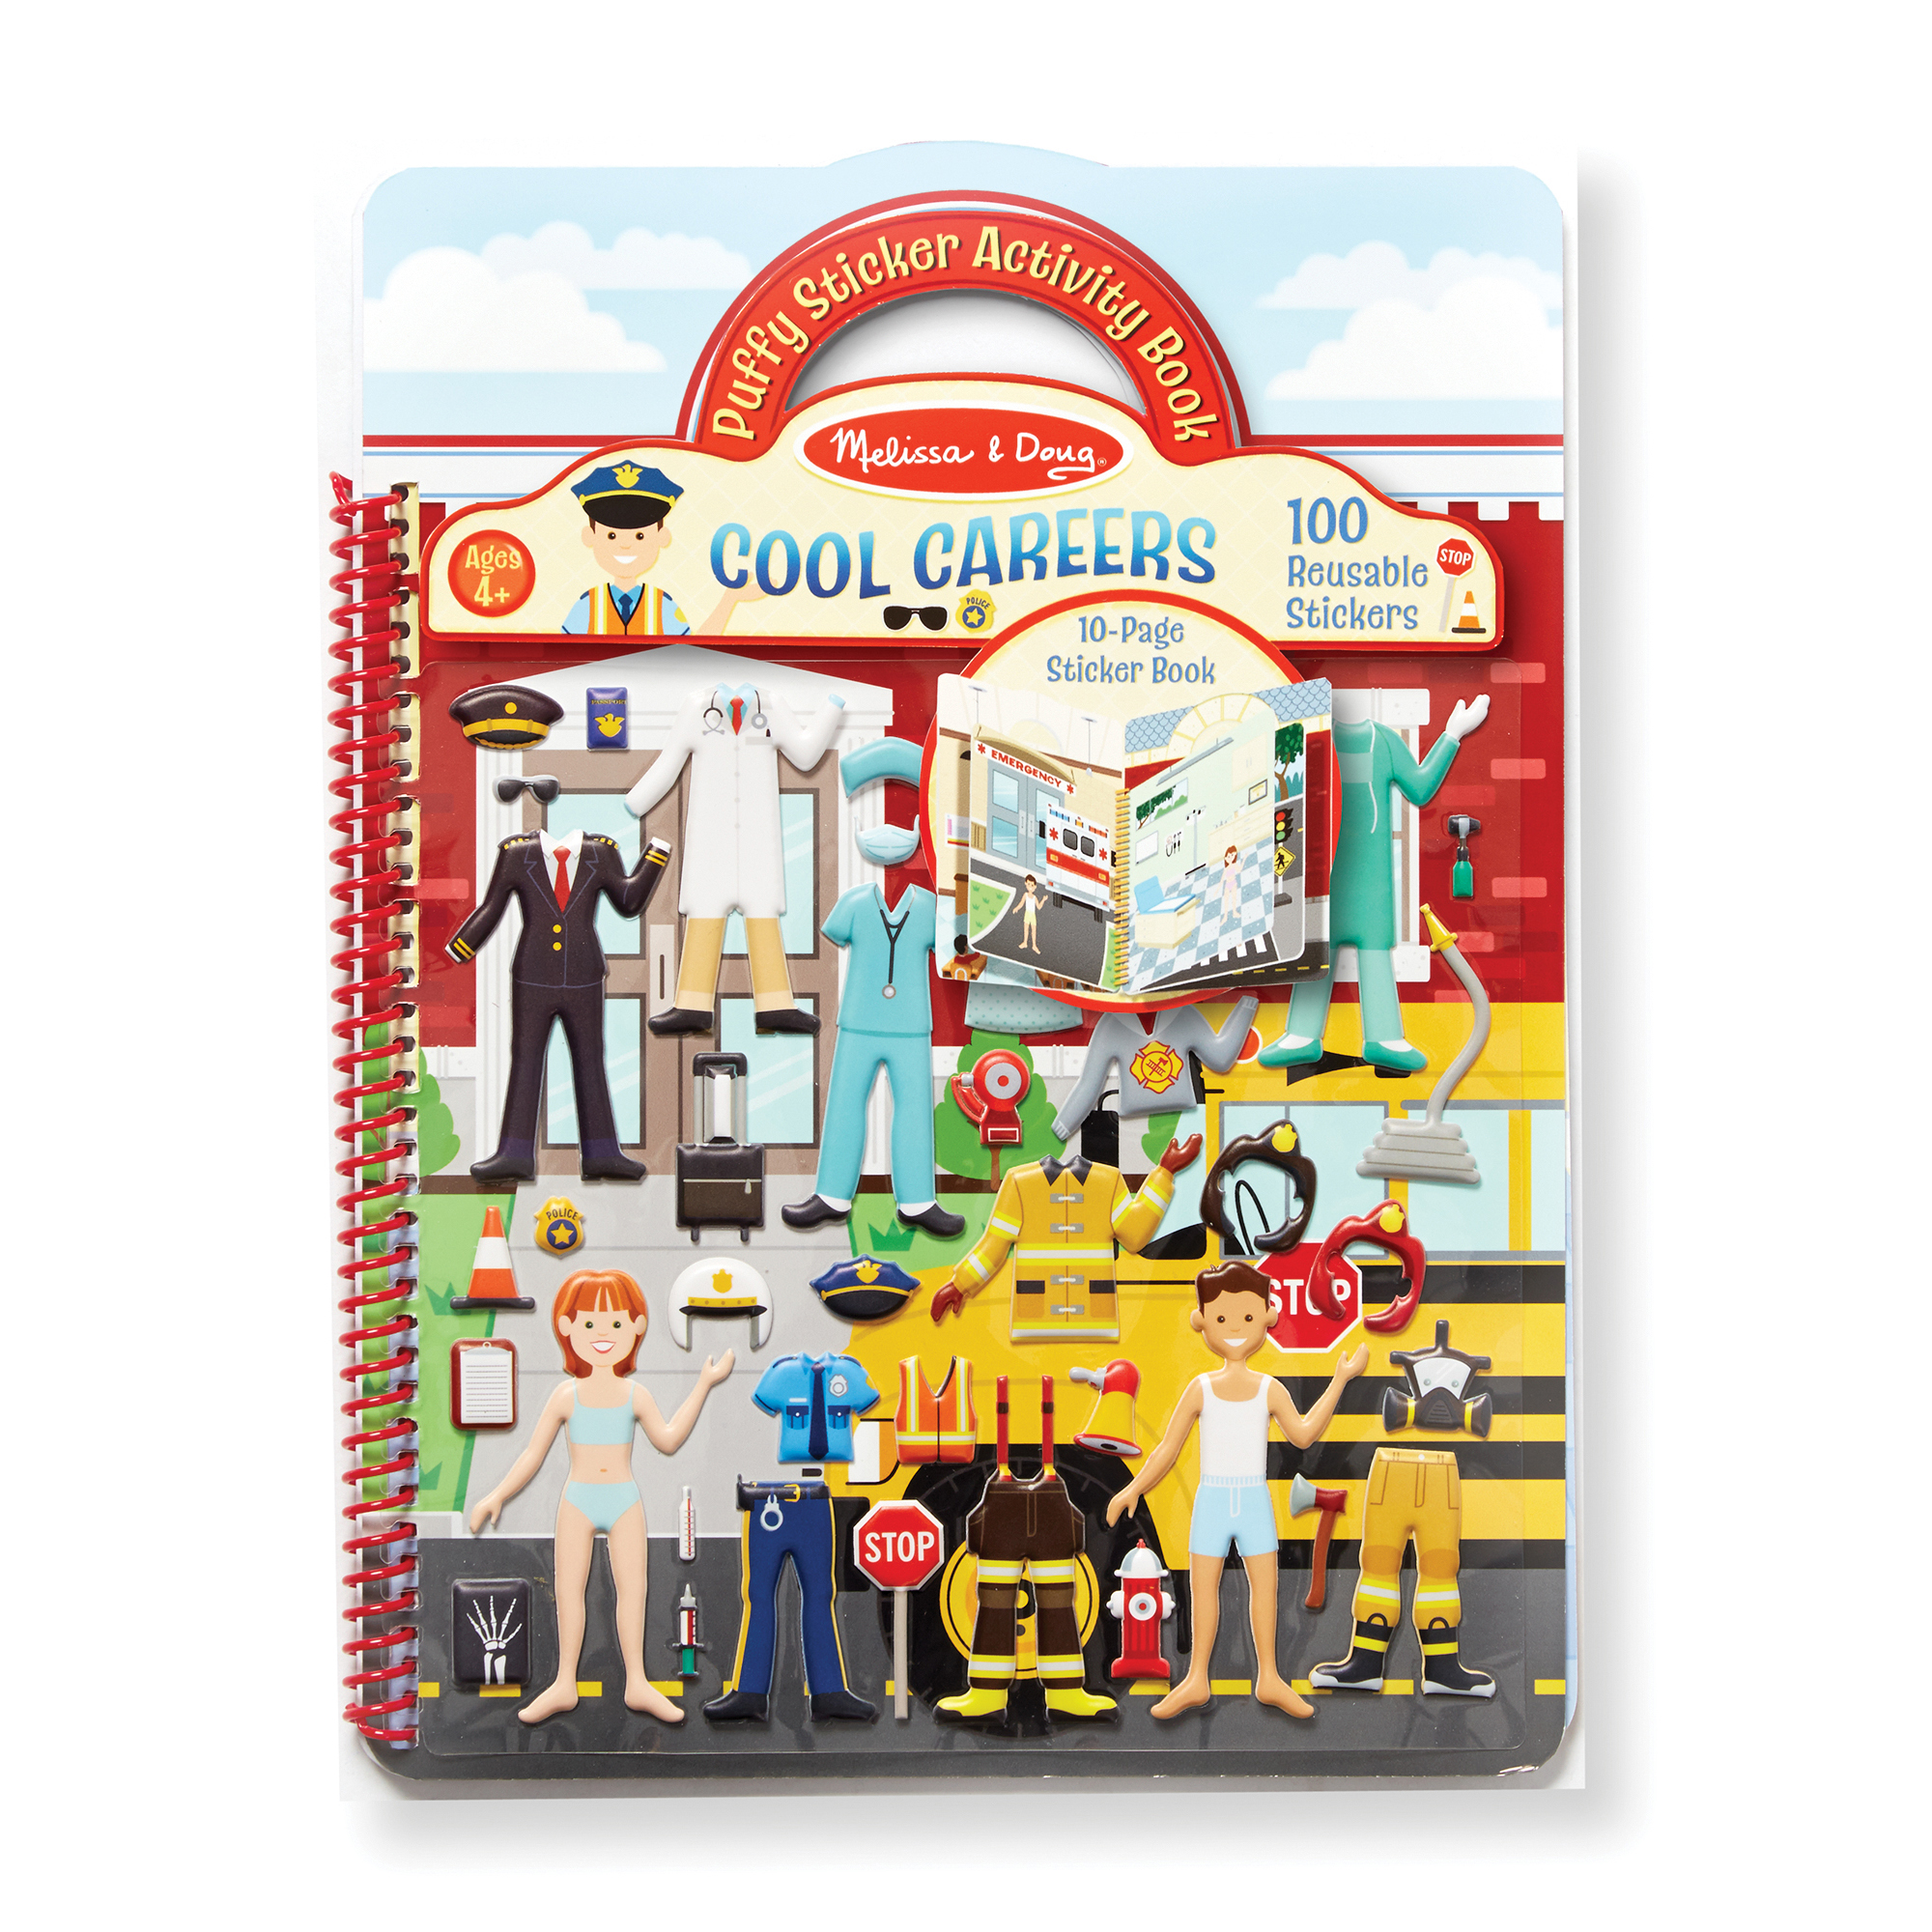 Explore a world of cool careers with this 10-page sturdy, spiral-bound sticker book. Layer the reusable stickers to dress the teacher, doctor, construction worker, police officer, firefighter, pilot, and more! Add tools and accessories to complete detailed scenes such as an airport, school, hospital, and neighborhood. The 100 stickers are easy to place, layer, and reposition. Simply place the puffy stickers on the boards, and then change the picture to change the story! This activity offers endless opportunities for kids to express their creativity, all while improving fine motor skills and communication. Format makes this kids' sticker activity set great for travel, too!